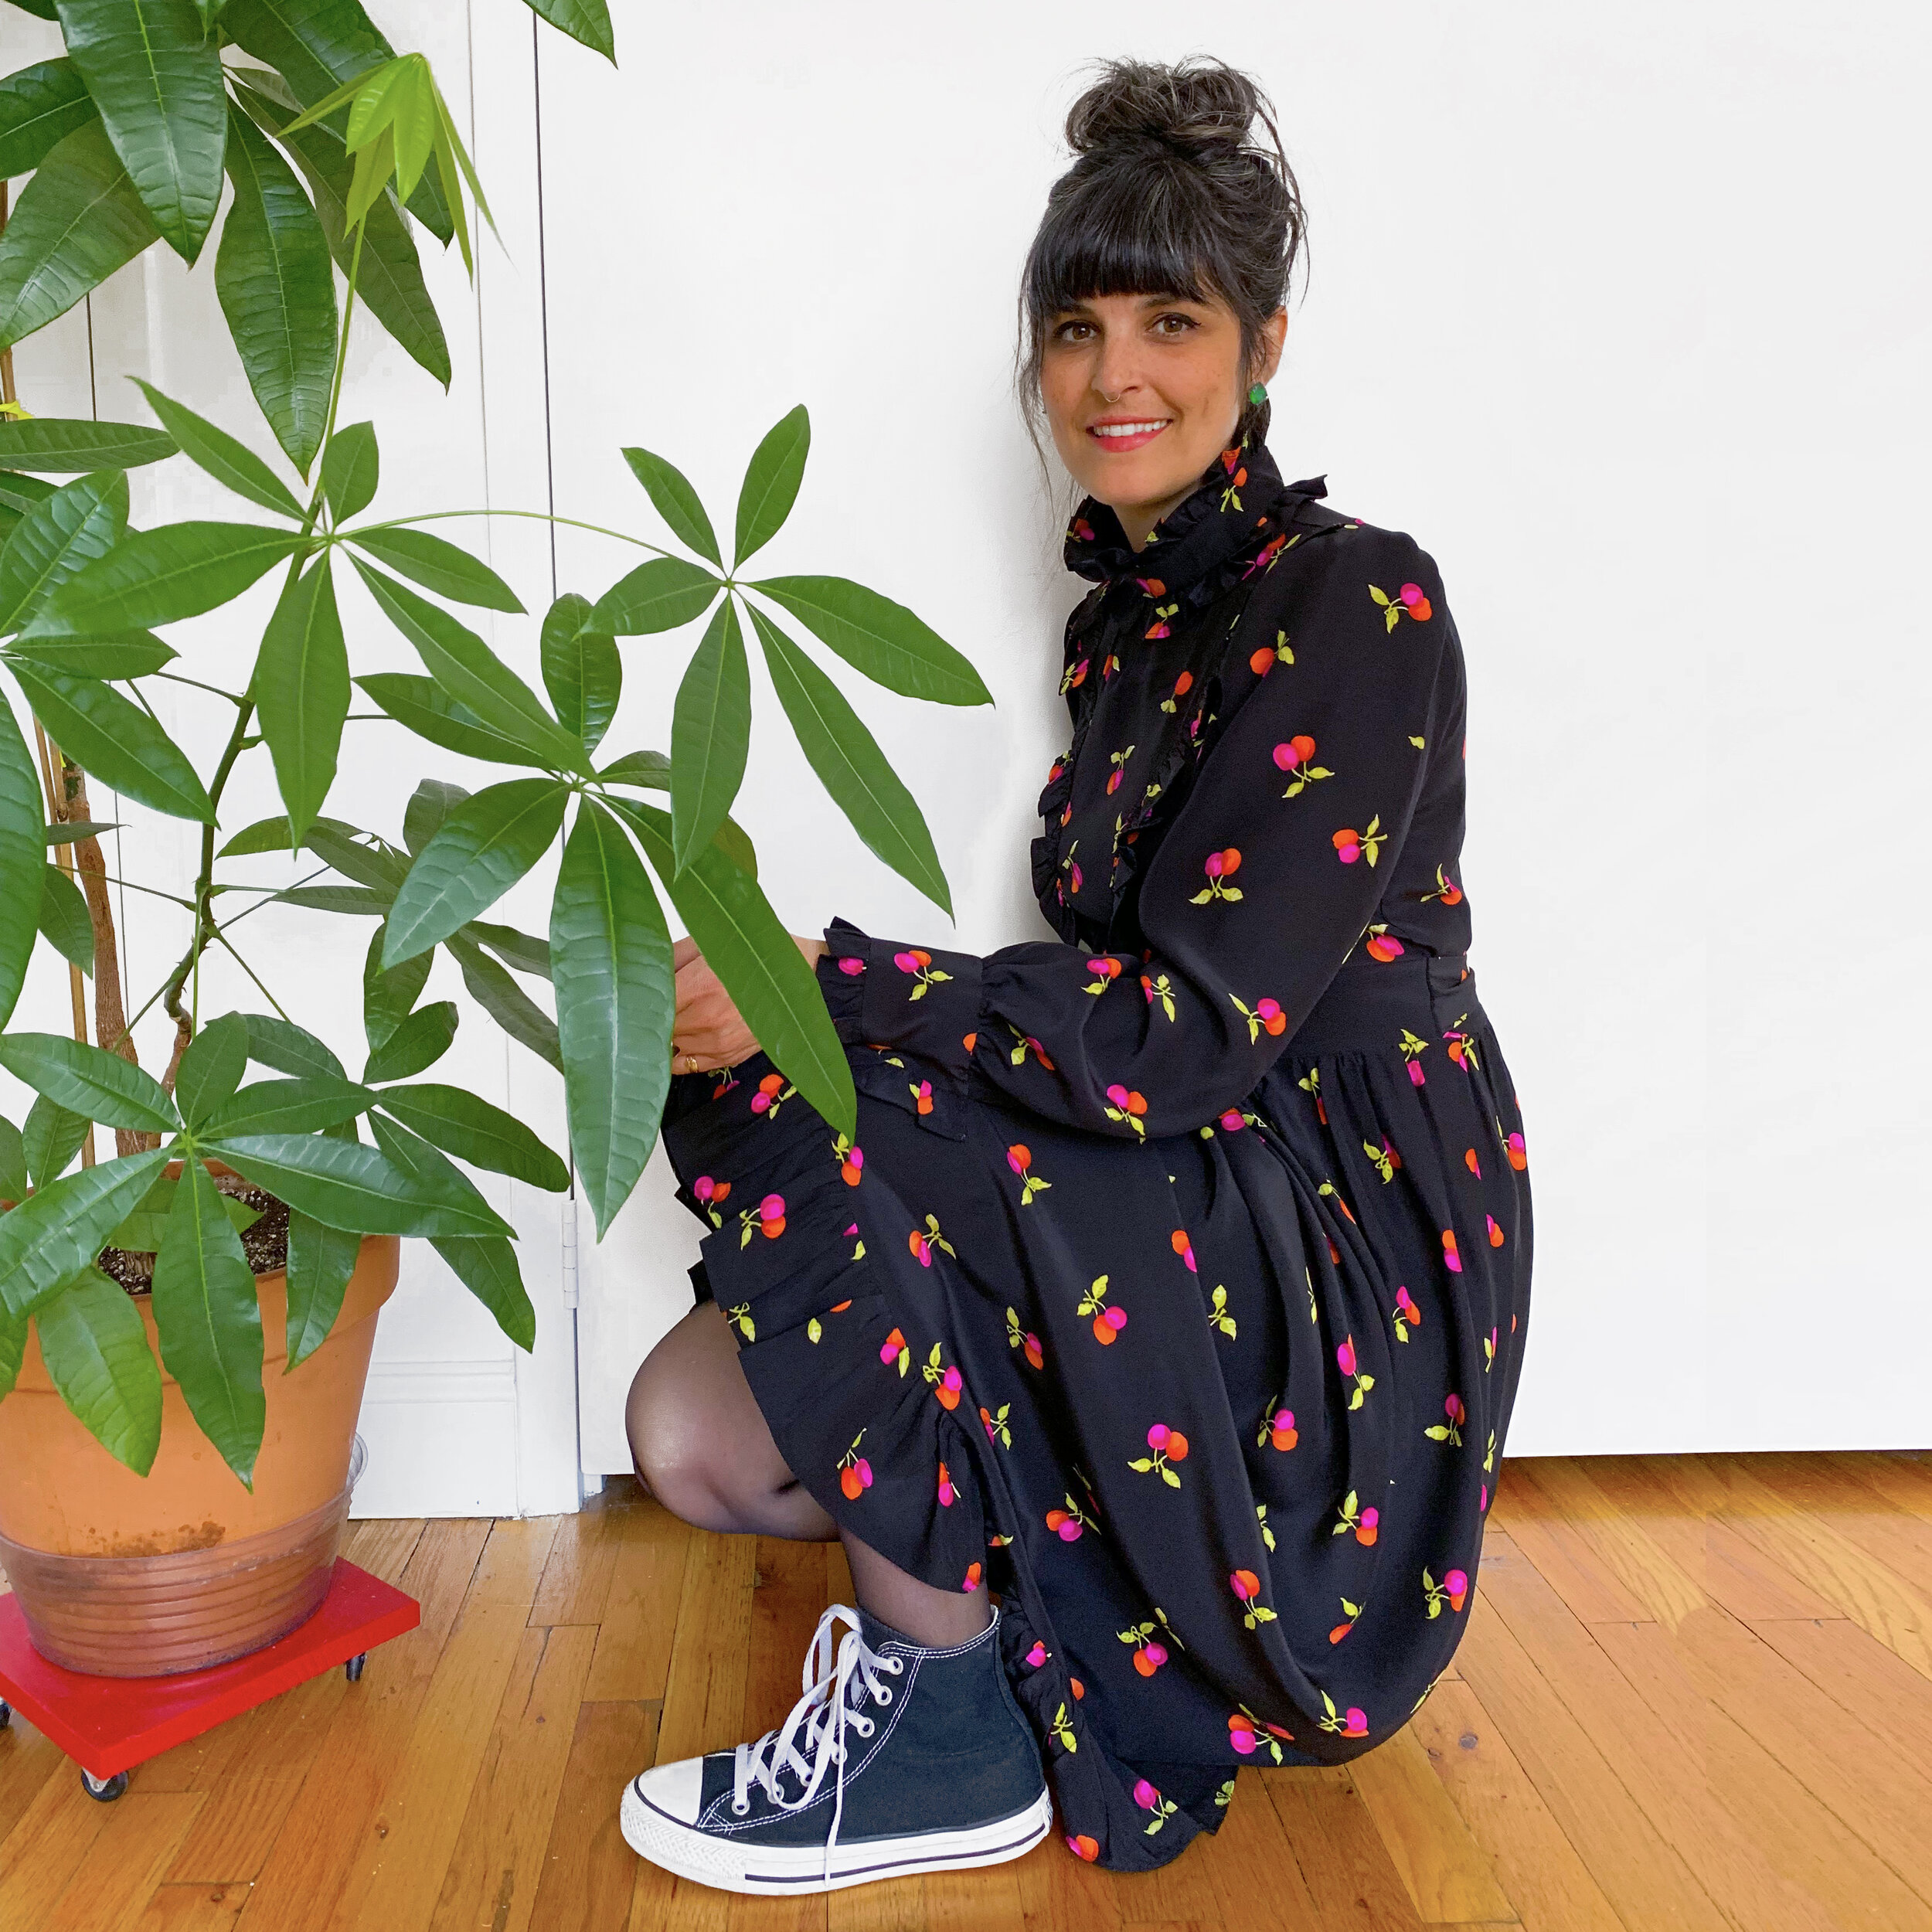 The easiest way to make an over the top silk dress wearable is to pair it with some beat up old Converse.